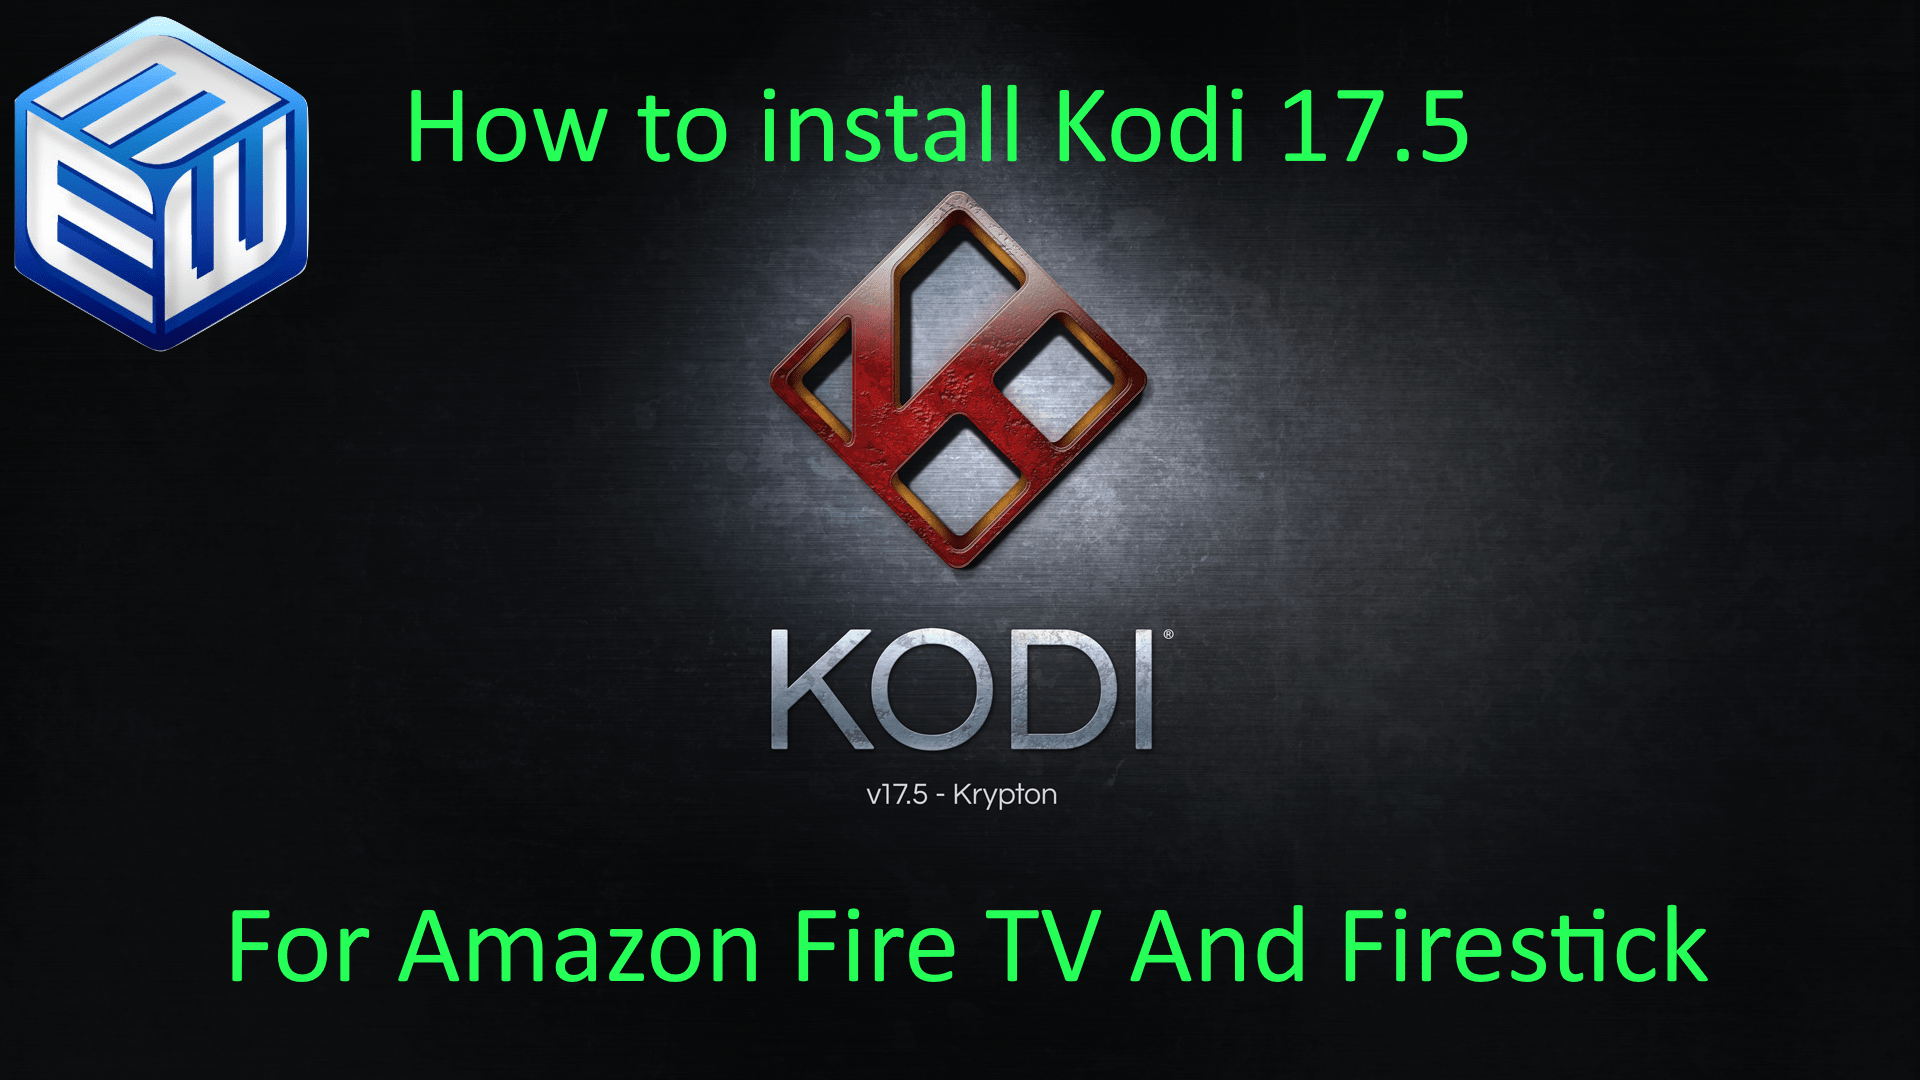 HOW-TO: Install Kodi 17.5 update for Amazon Firesticks and Fire TVs